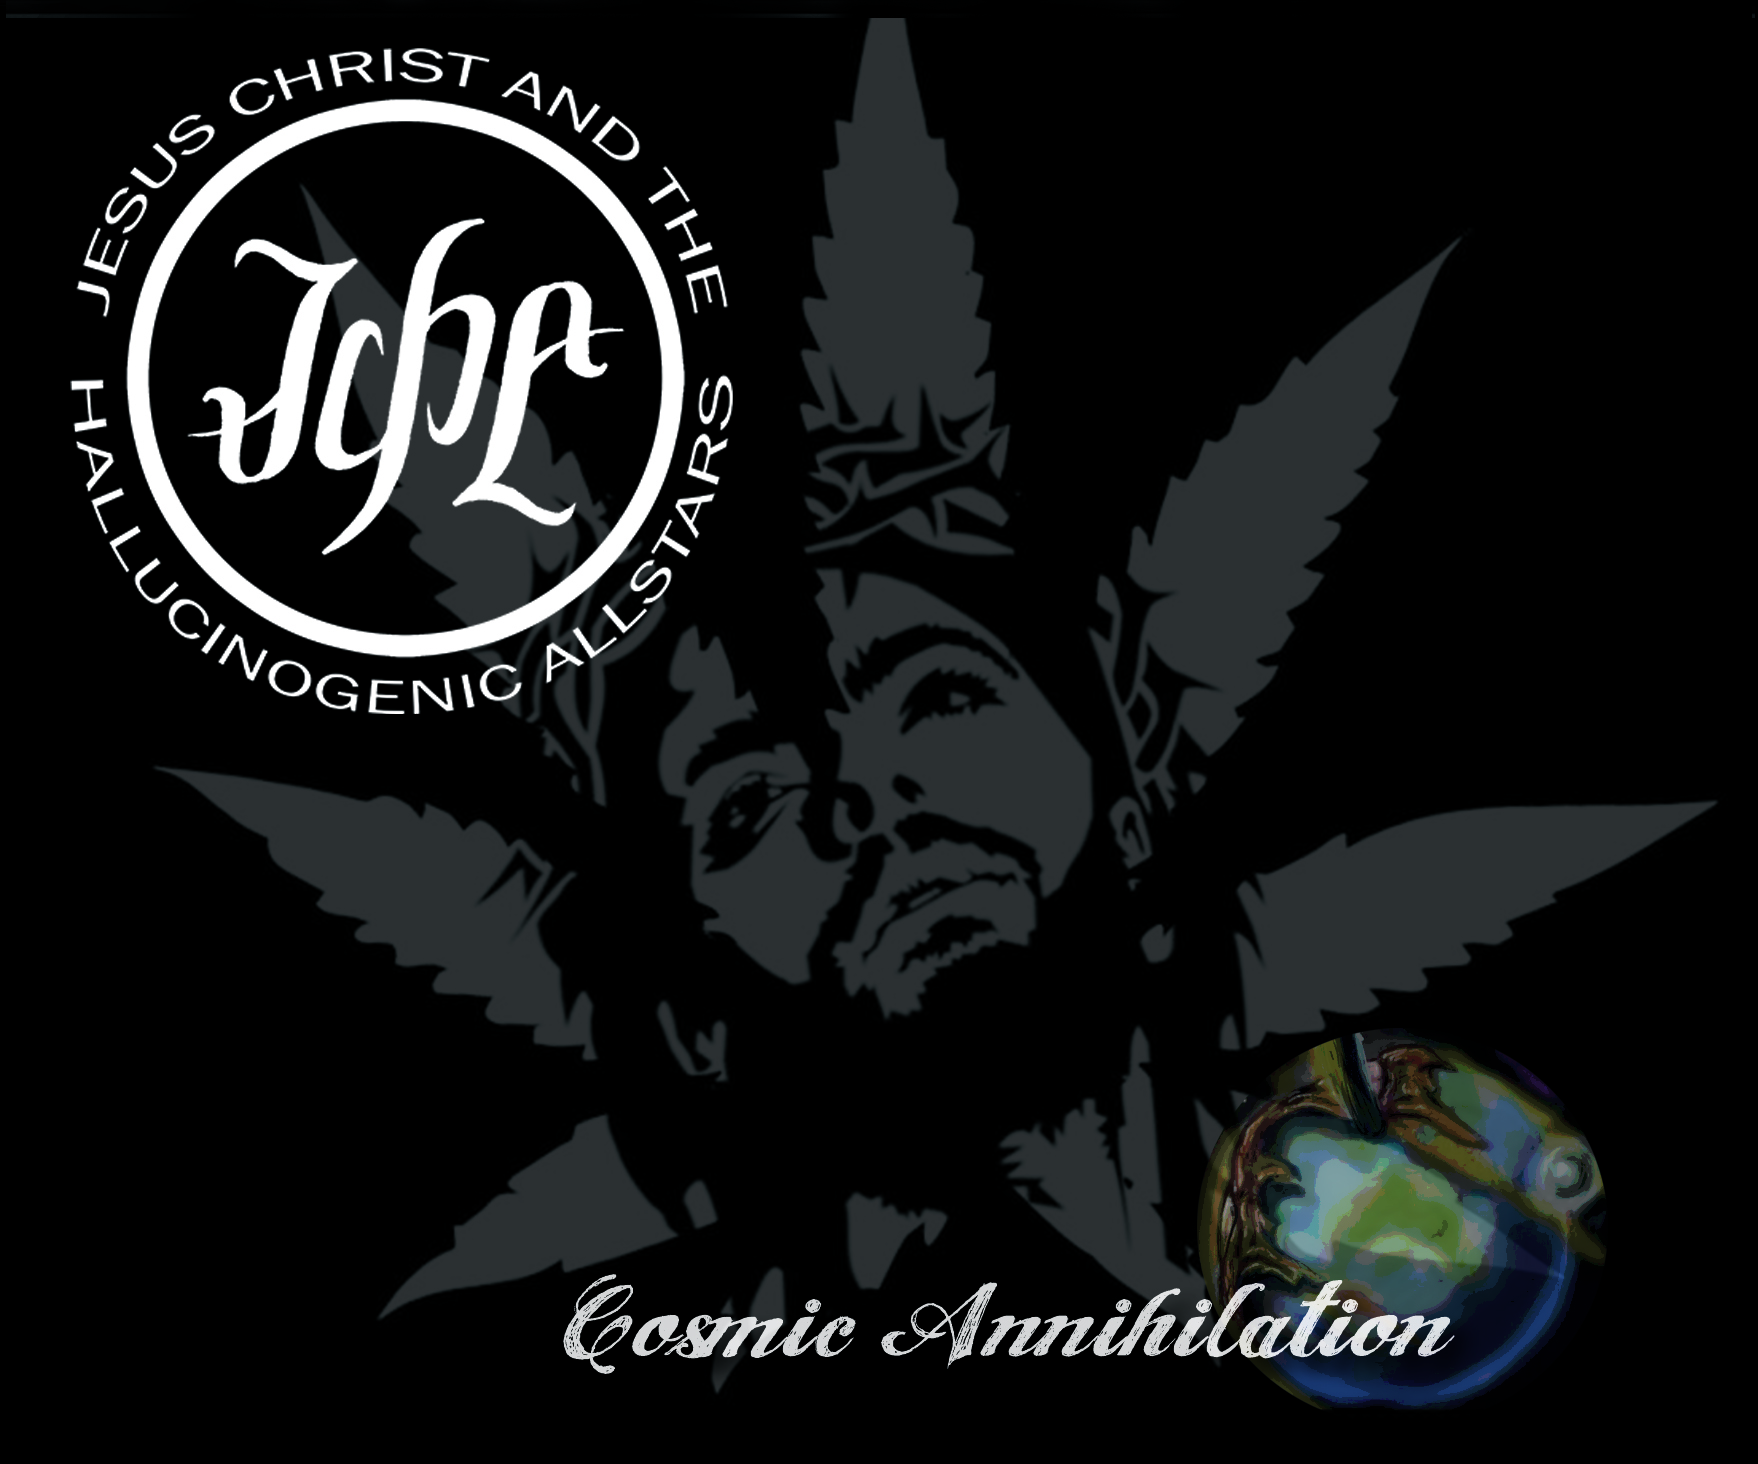 JCHA - Cosmic Annihilation